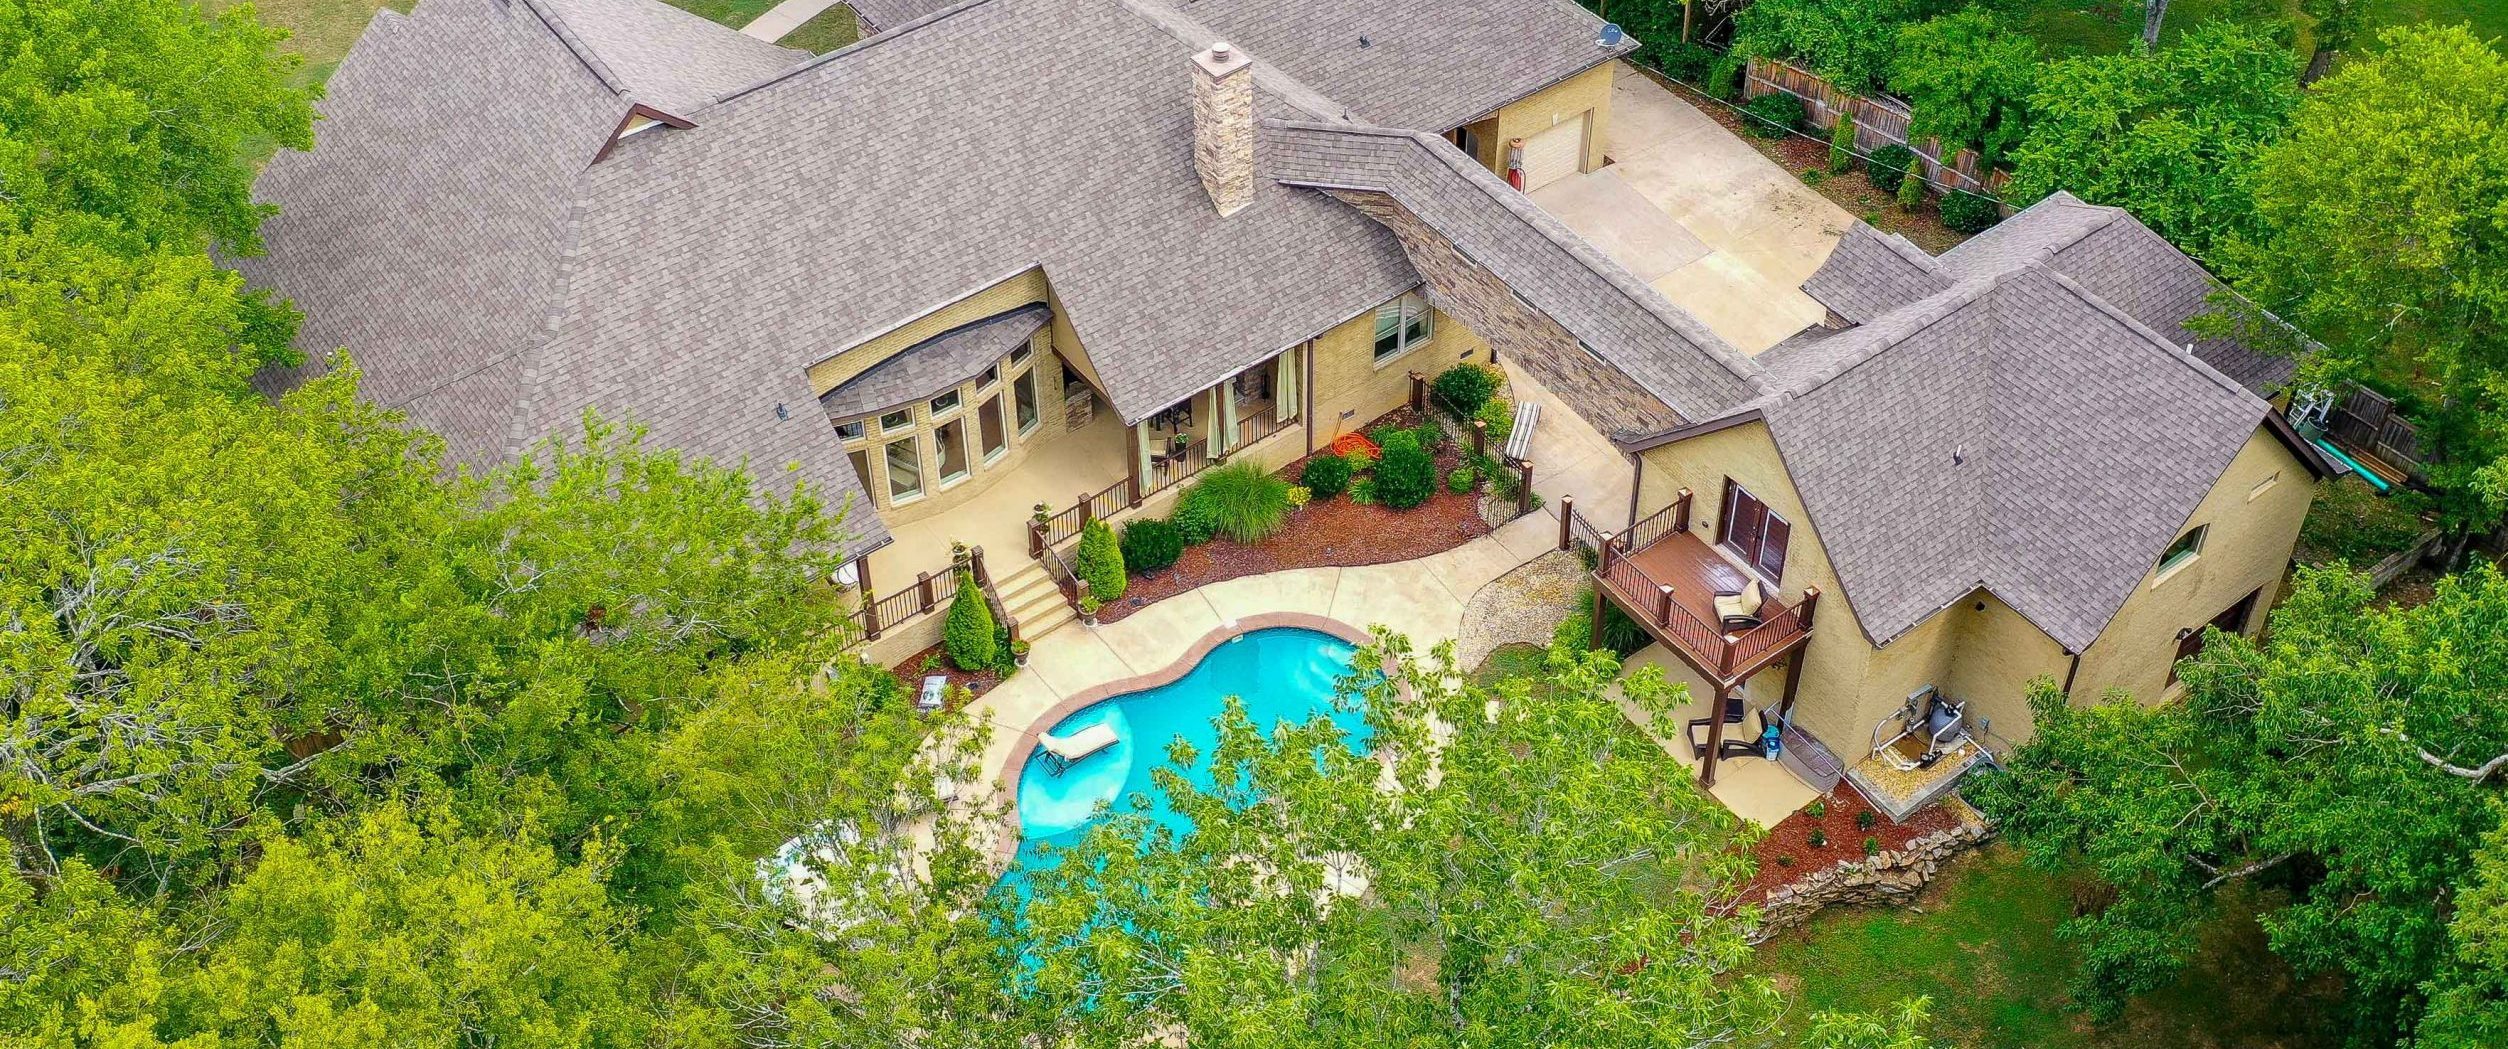 Drone Photography and Videography for Home Amenities